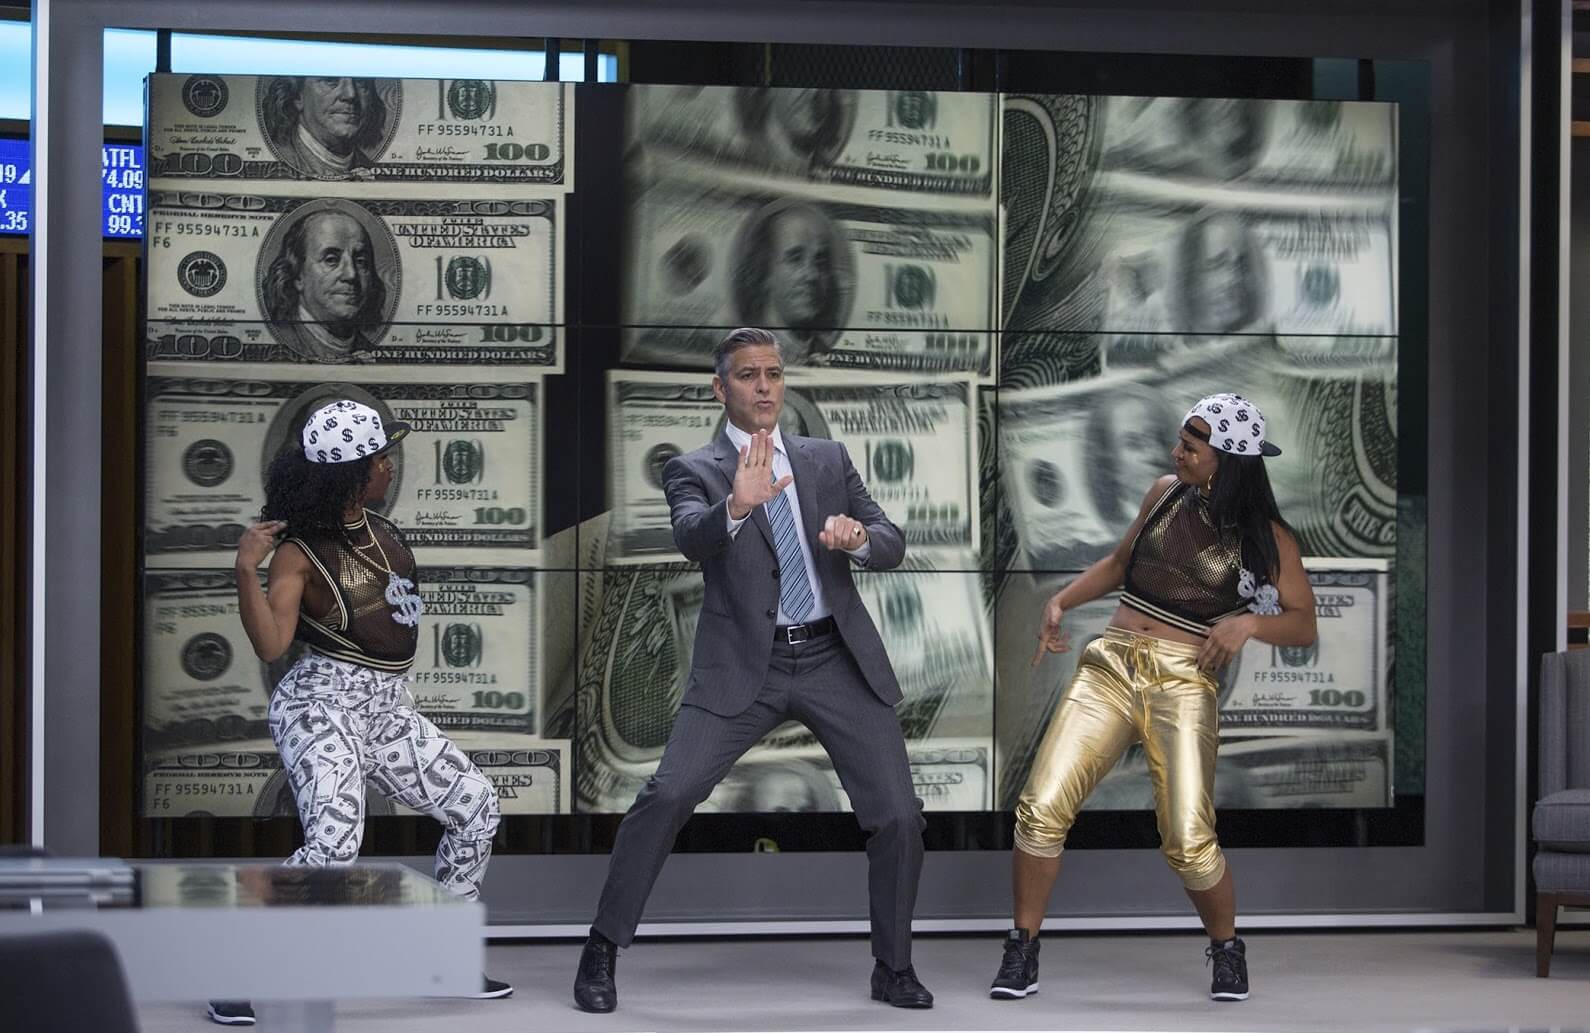 Fiscal Responsibility Short Film Budget Clooney Image